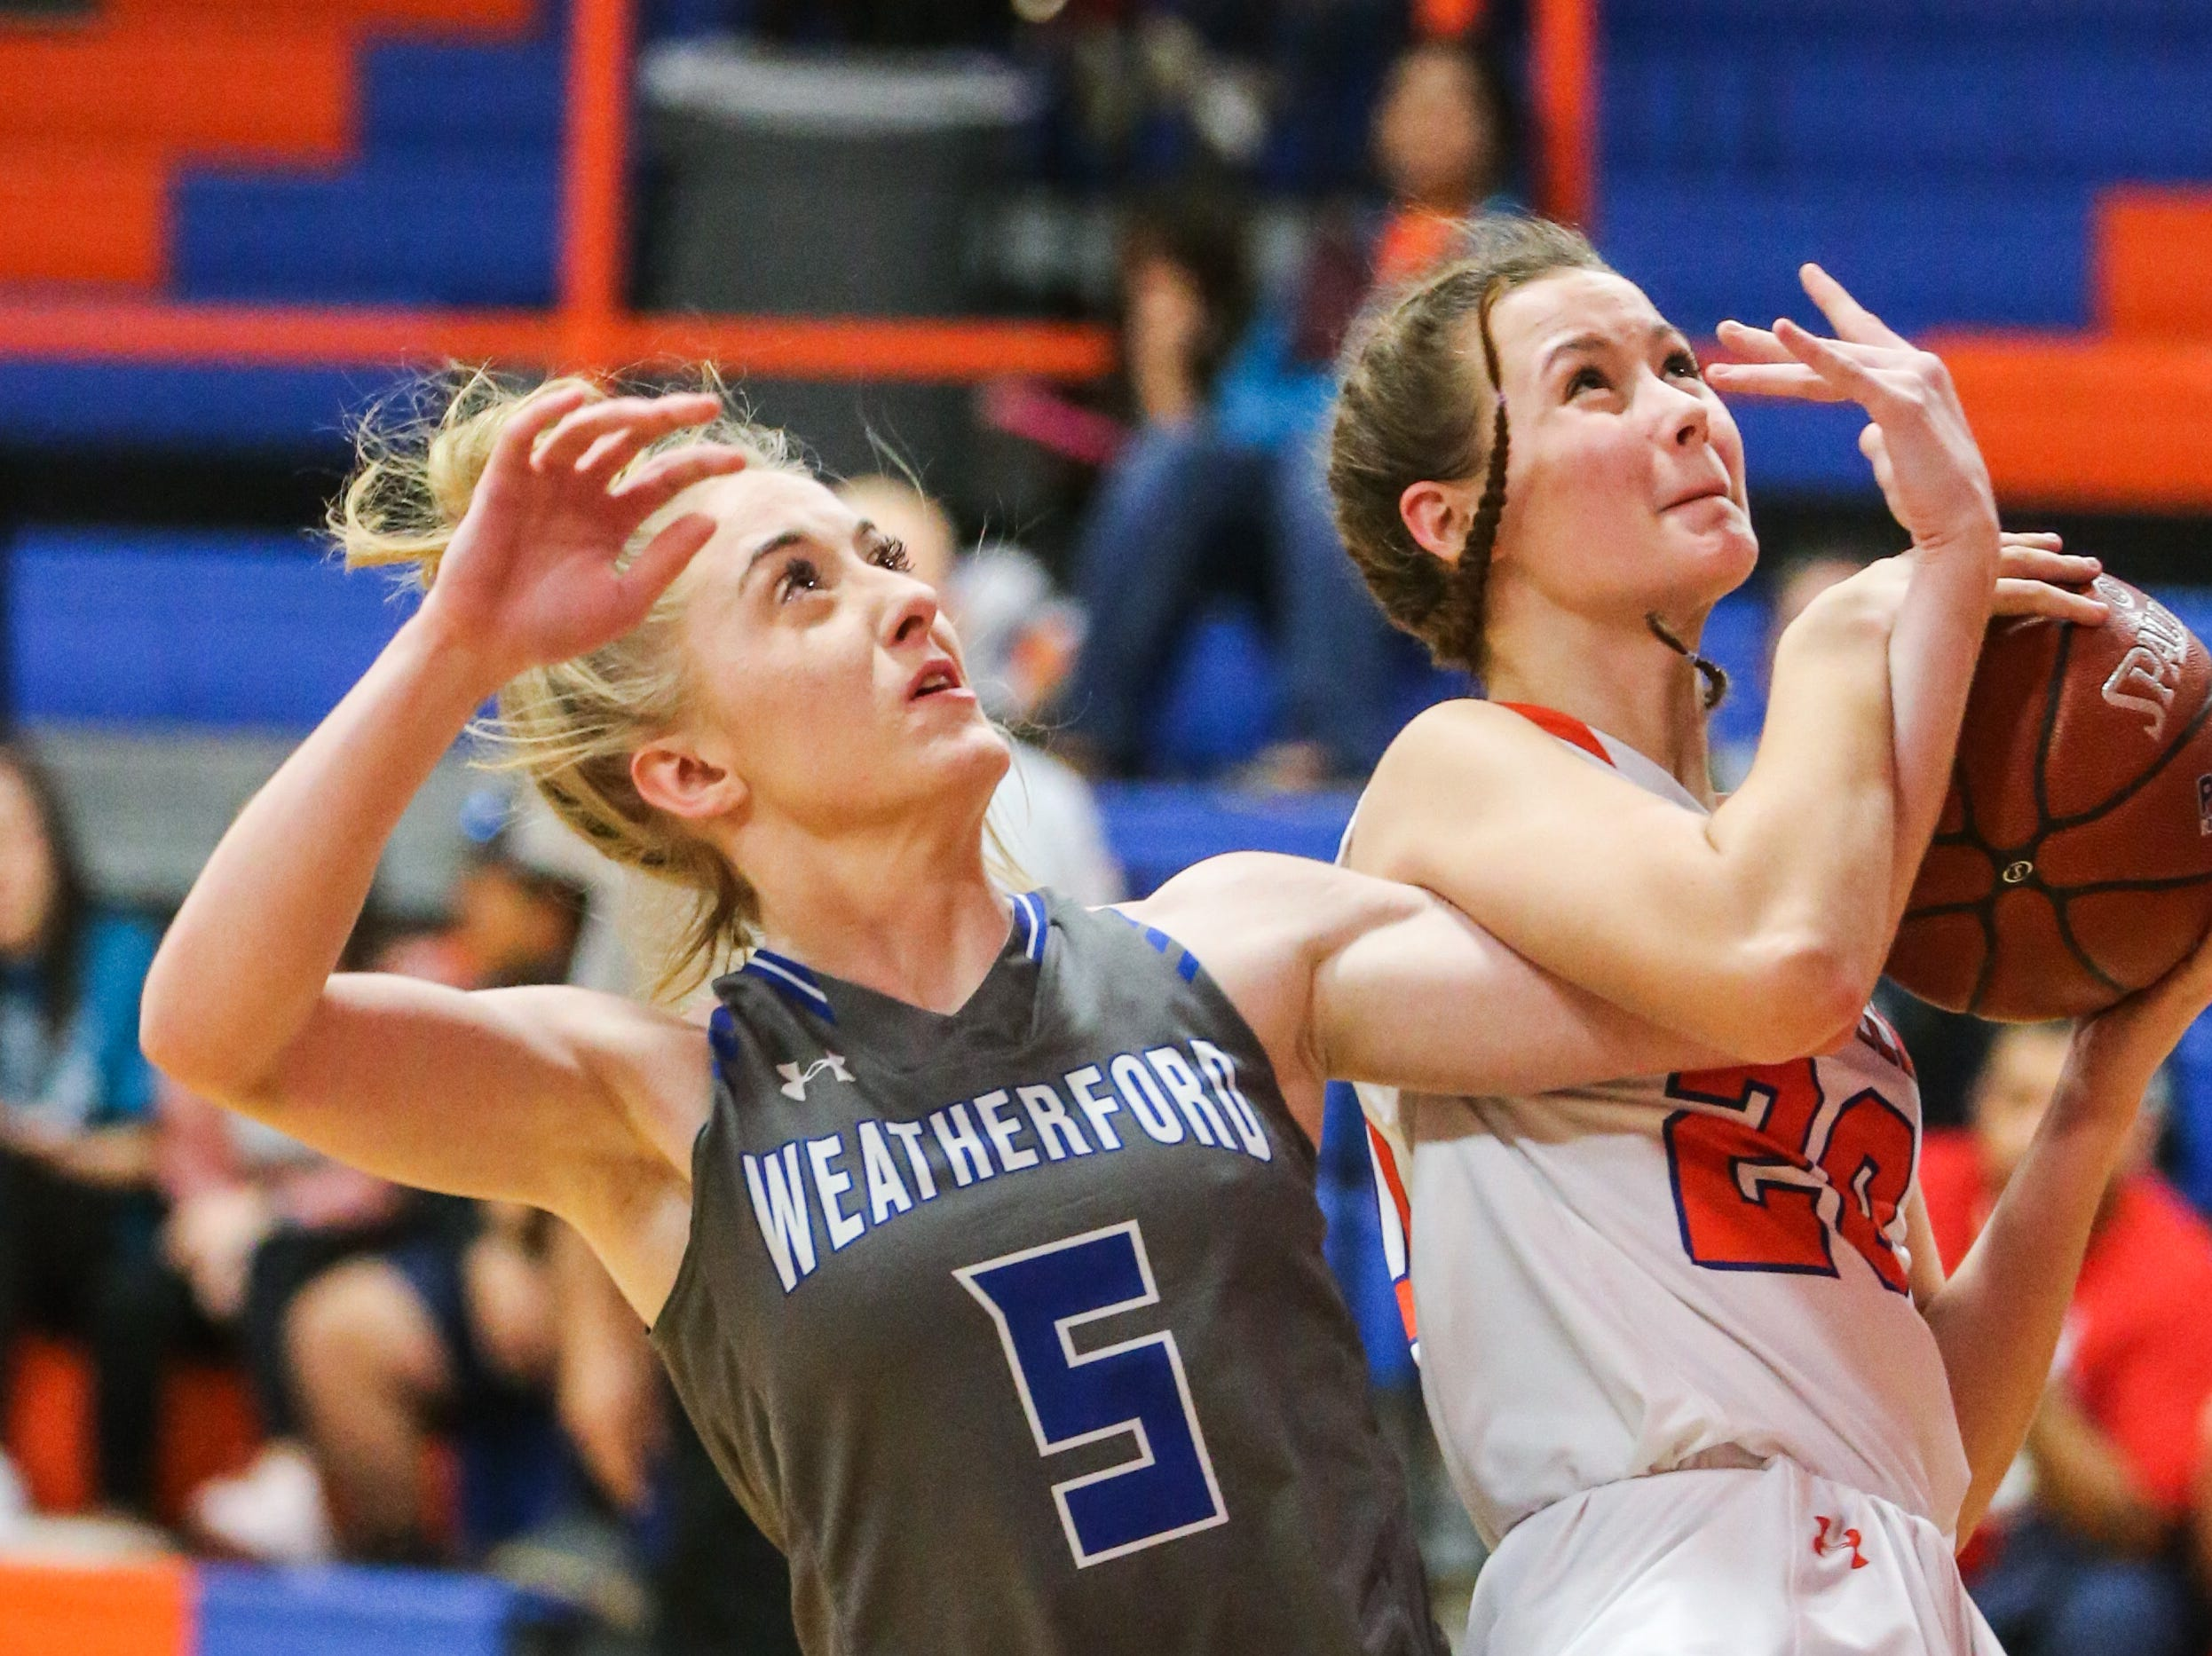 Central's Anjelina Humphreys gets tangled with Weatherford player as she tries to shoot Tuesday, Jan. 22, 2019, at Central High School.